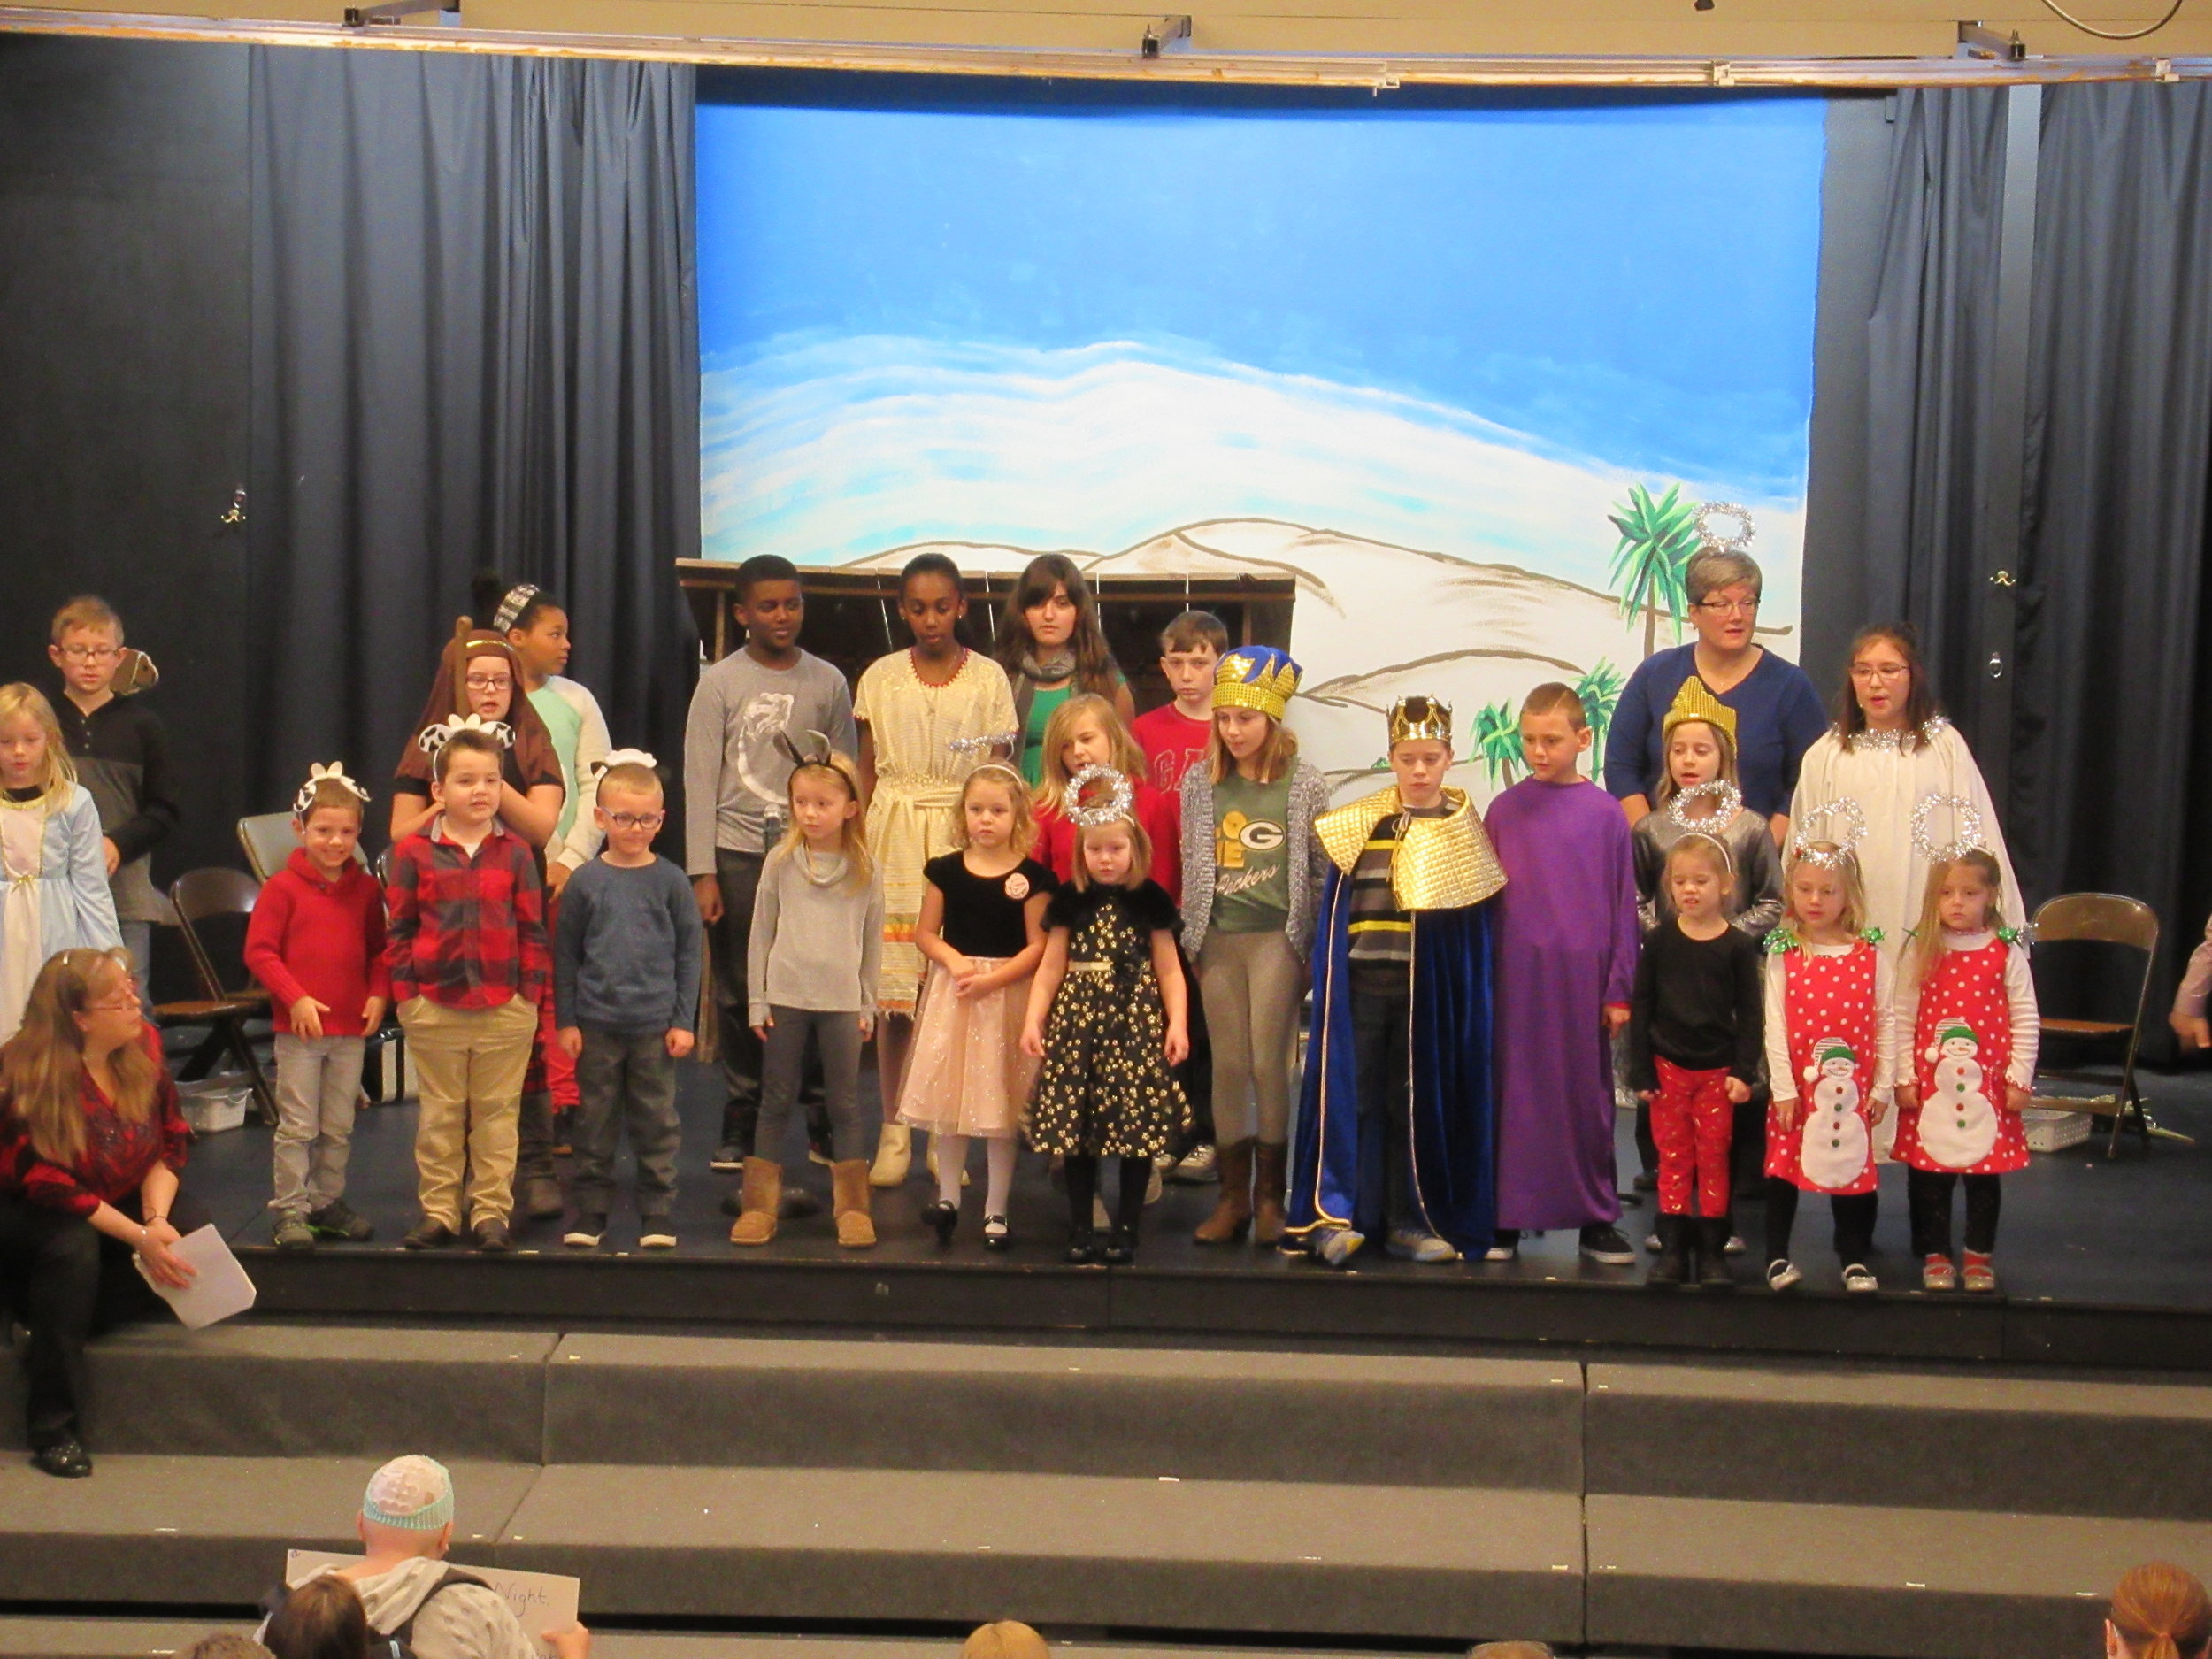 Children_s Christmas Program 2.JPG